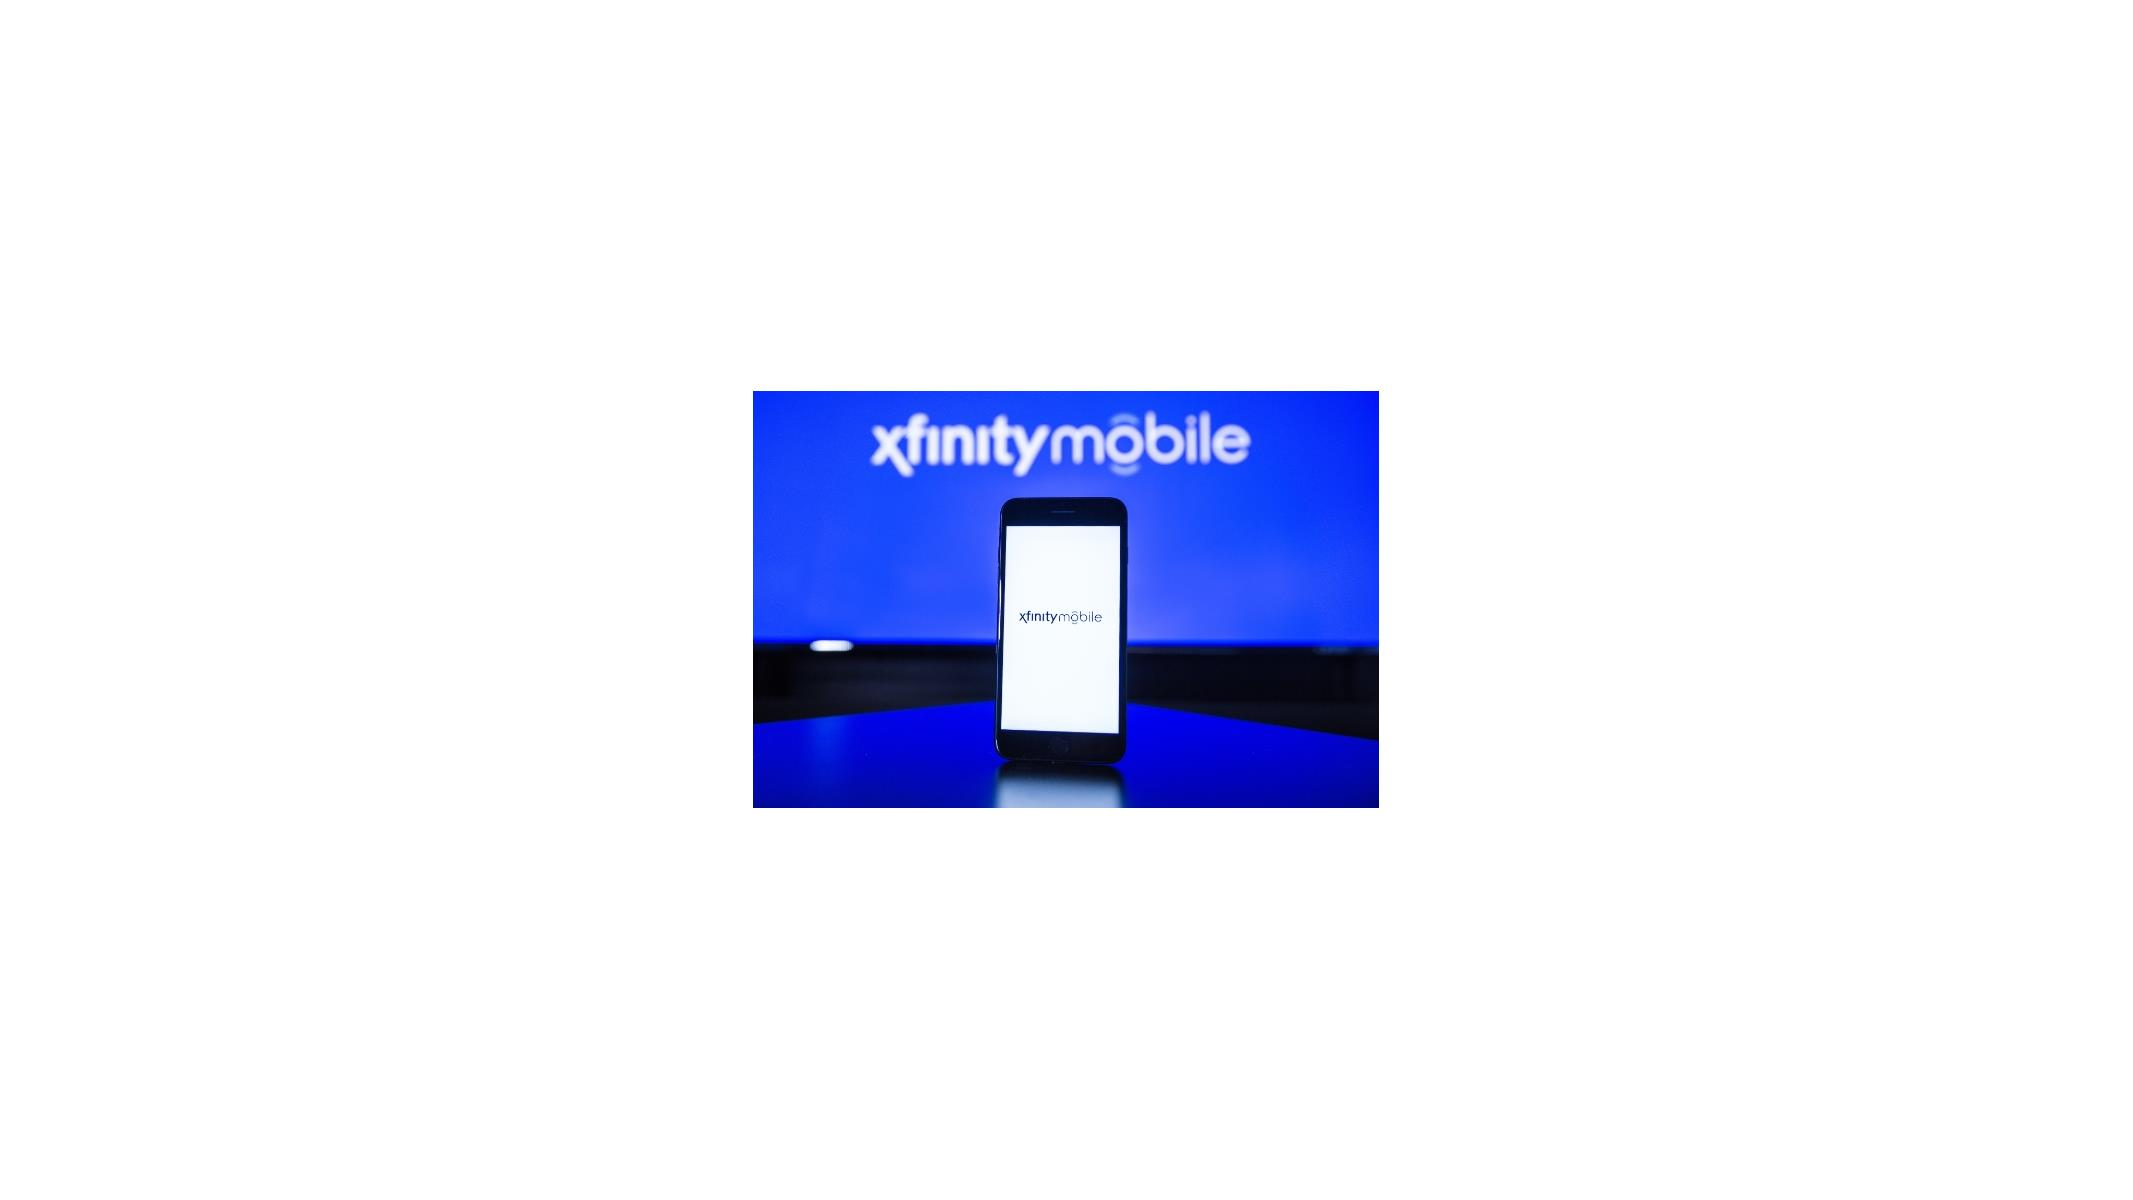 Comcast Cripples Xfinity Mobile Phone Service With 480p Video And